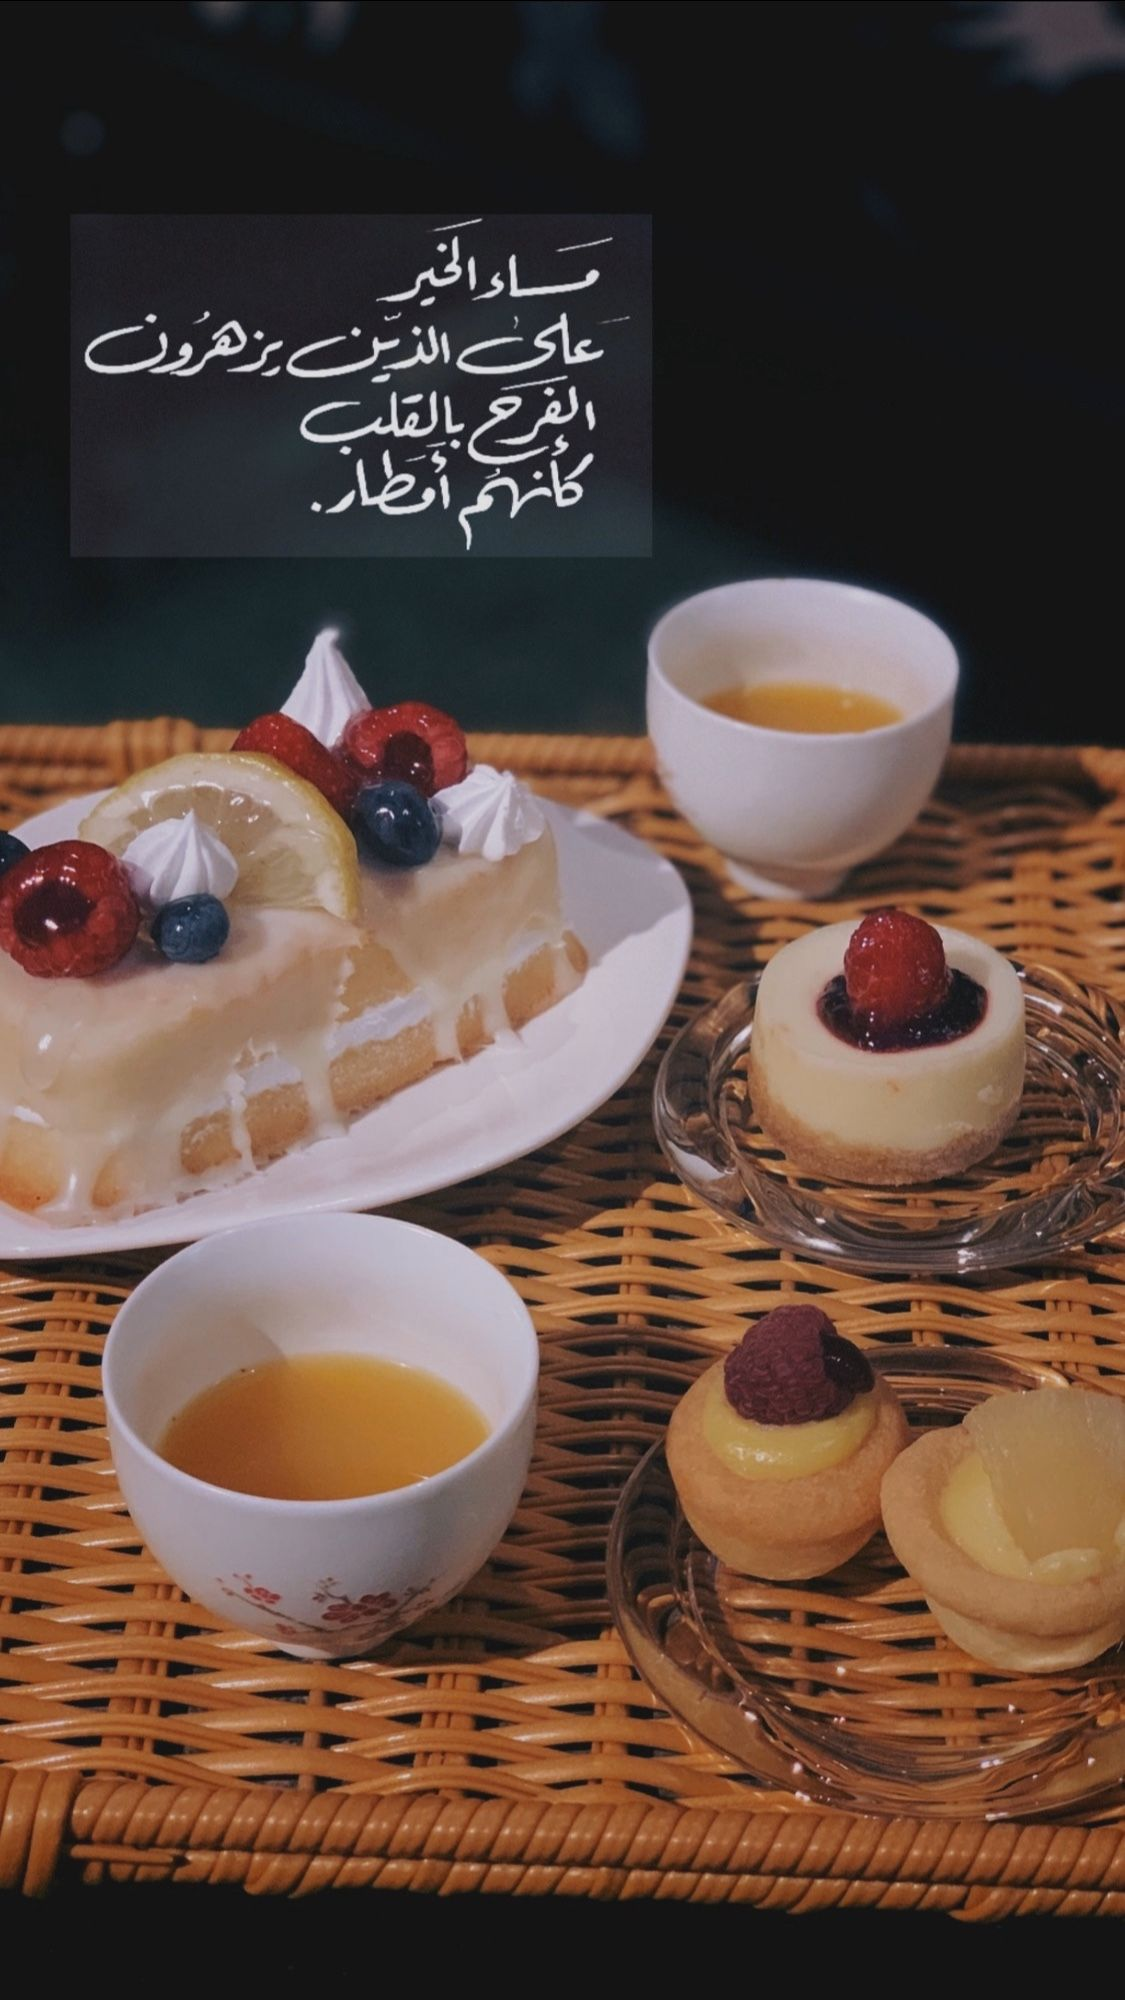 Pin By Wadhahm On يوميات Food Cover Photo Quotes Breakfast